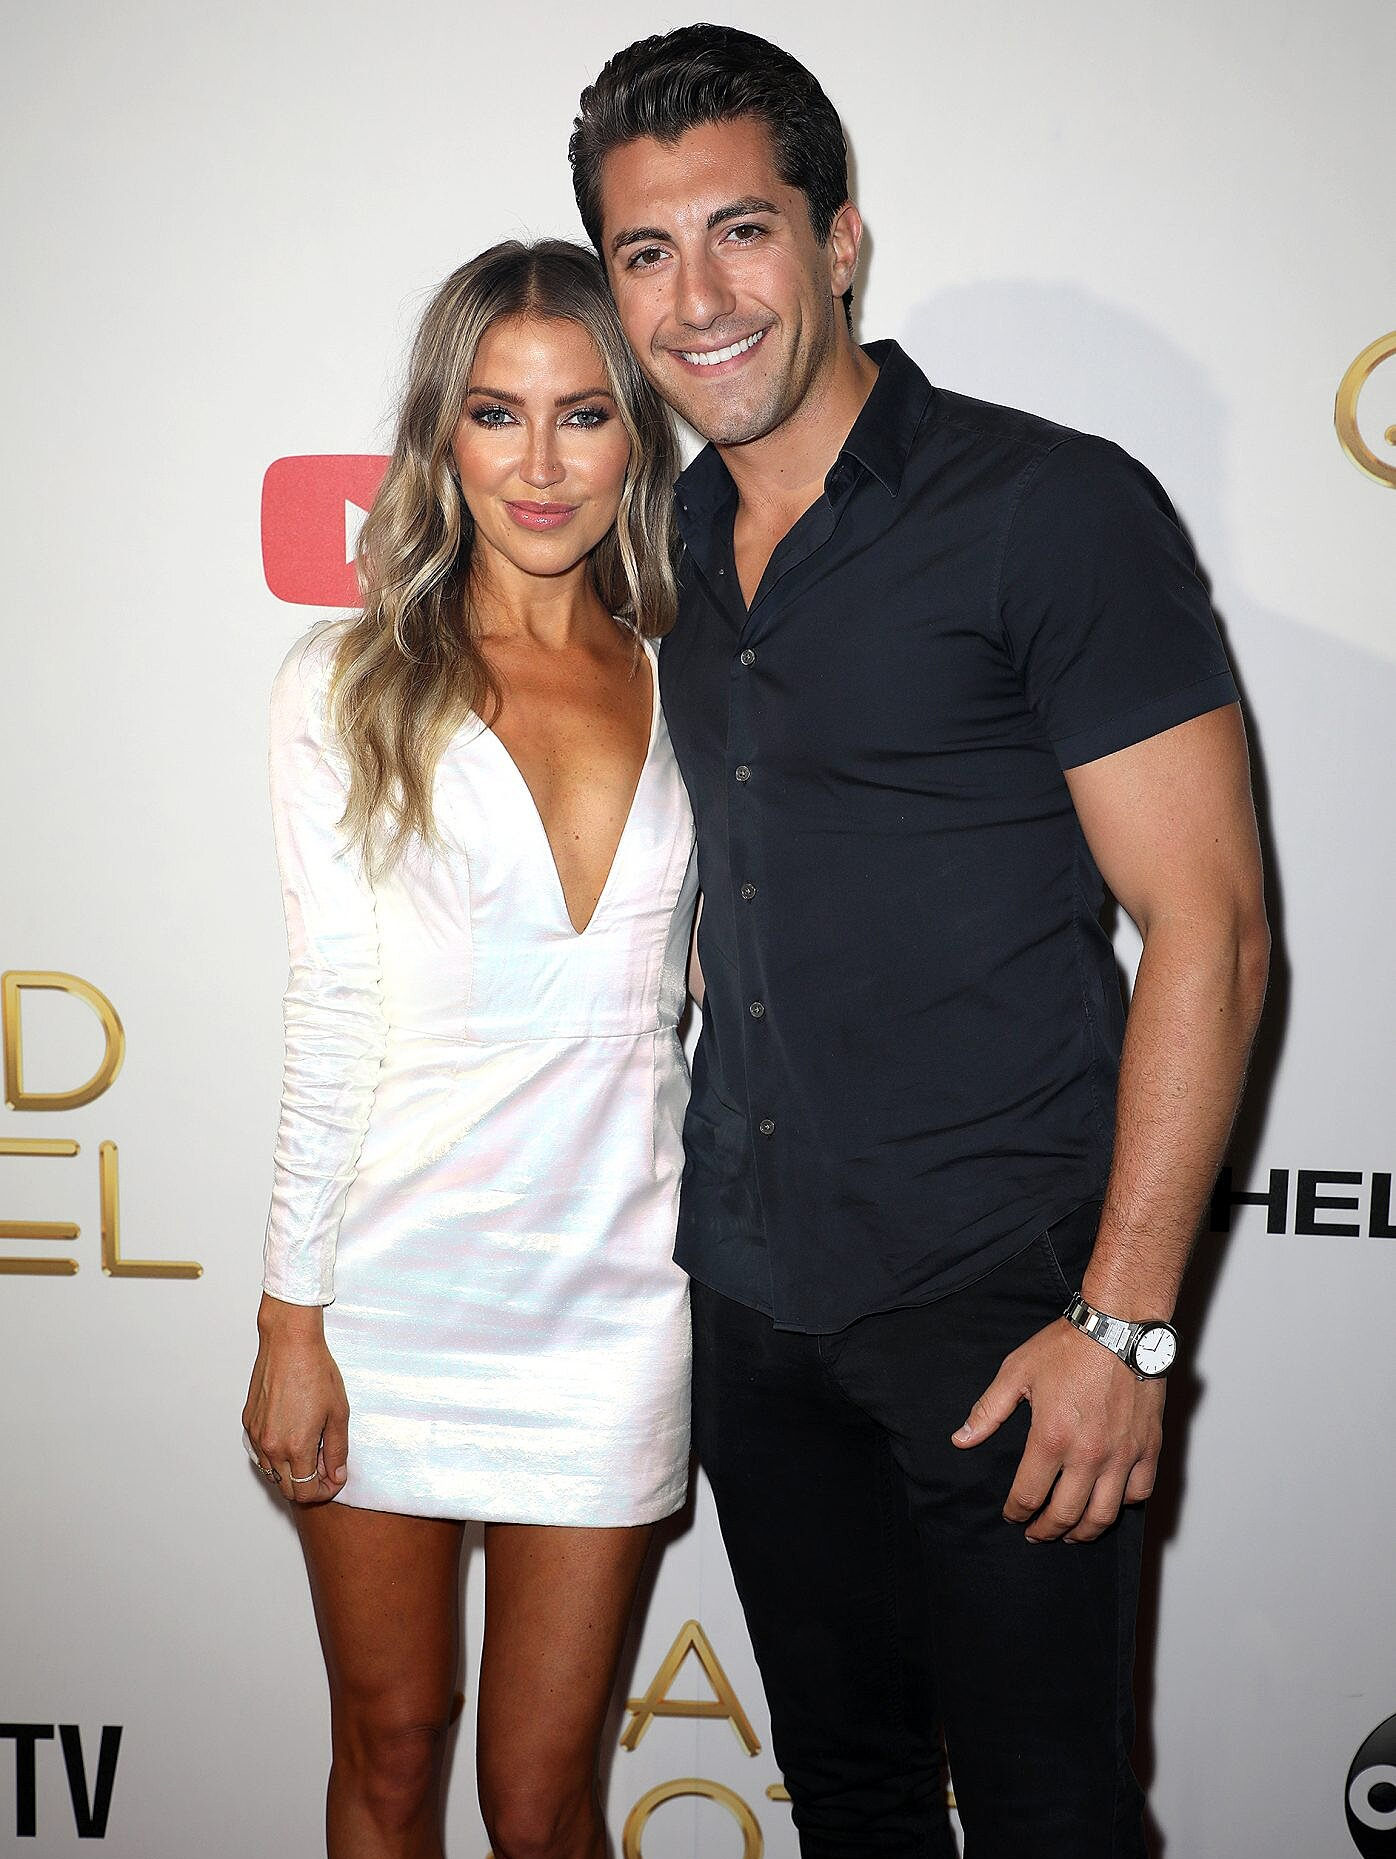 Bachelor couples still married